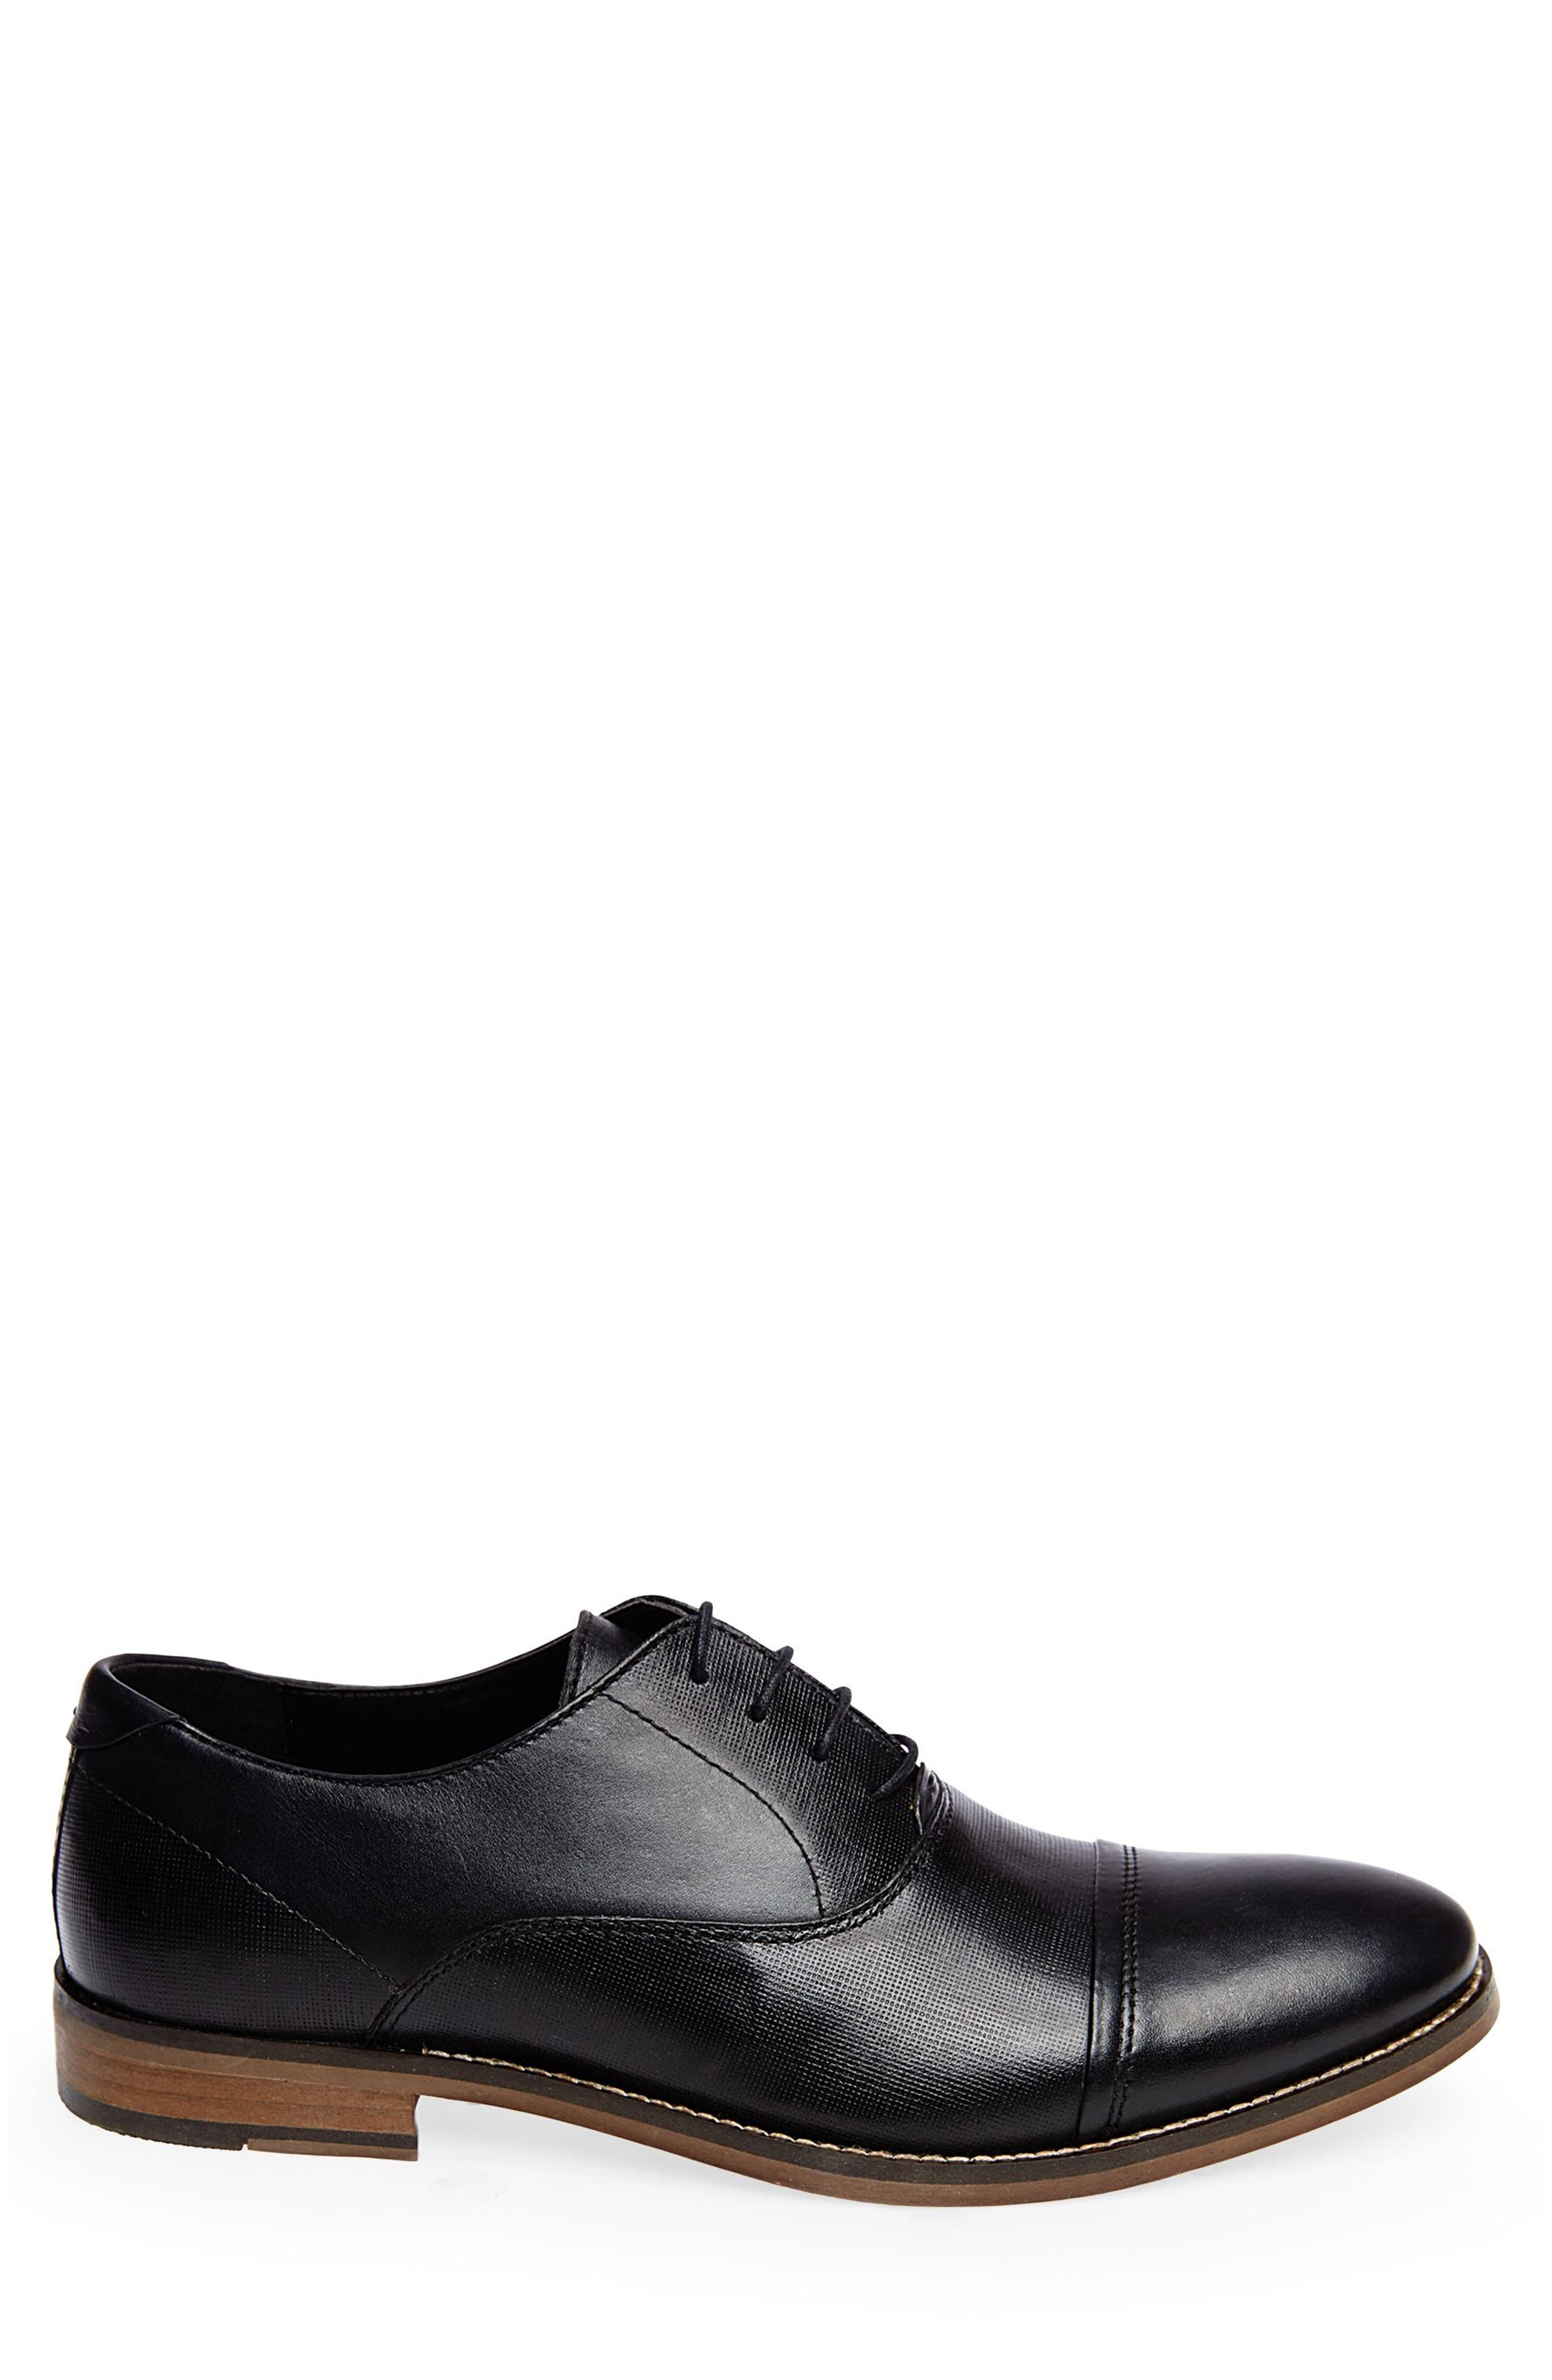 Finnich Textured Cap Toe Oxford,                             Alternate thumbnail 2, color,                             Black